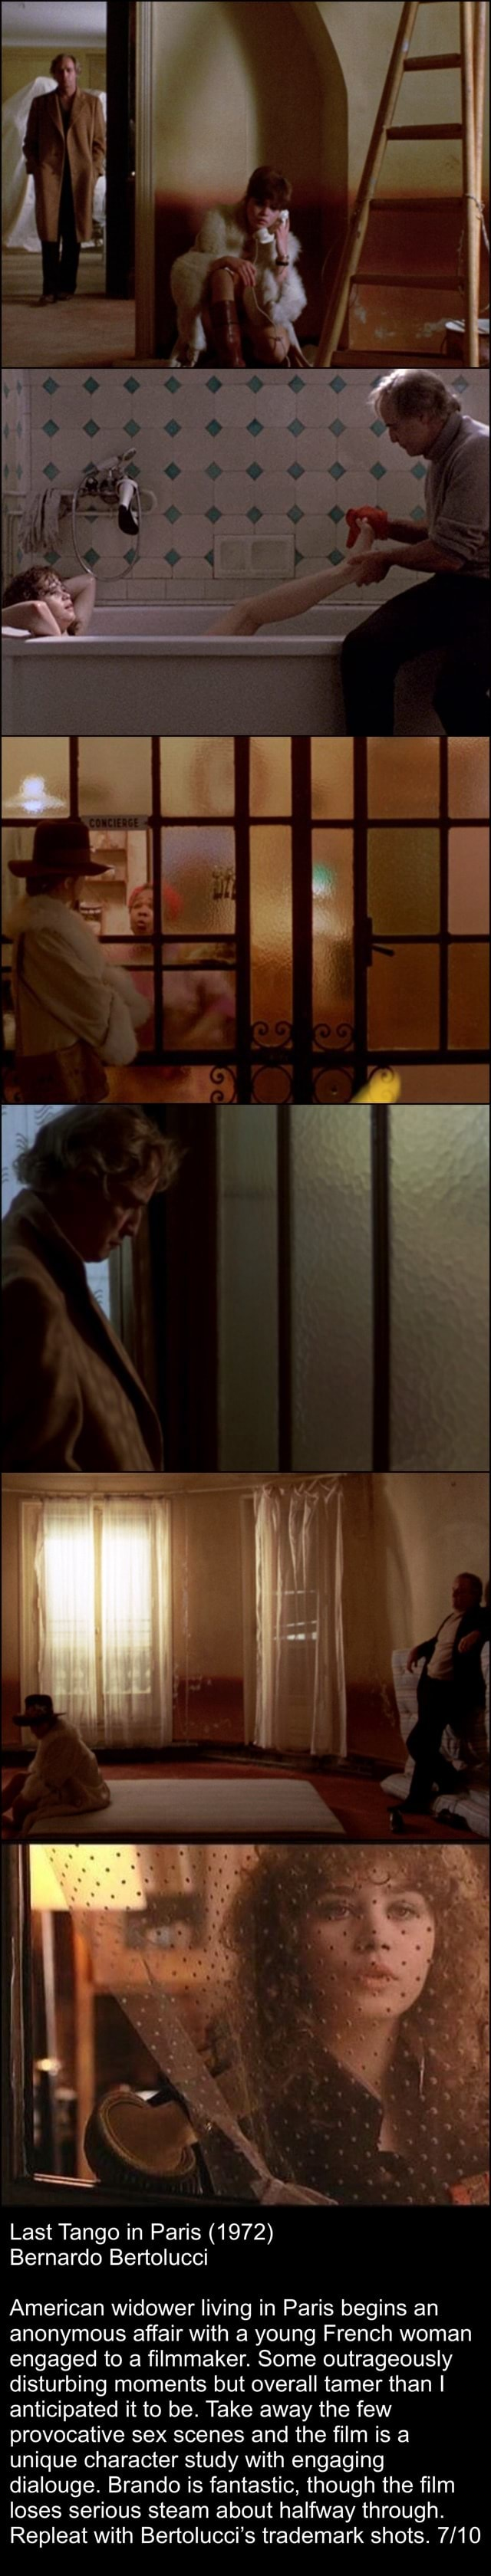 Last Tango in Paris 1972 Bernardo Bertolucci American widower living in Paris begins an anonymous affair with a young French woman engaged to a filmmaker. Some outrageously disturbing moments but overall tamer than I anticipated it to be. Take away the few provocative sex scenes and the film is a unique character study with engaging dialouge. Brando is fantastic, though the film loses serious steam about halfway through. Repleat with Bertolucci's trademark shots memes